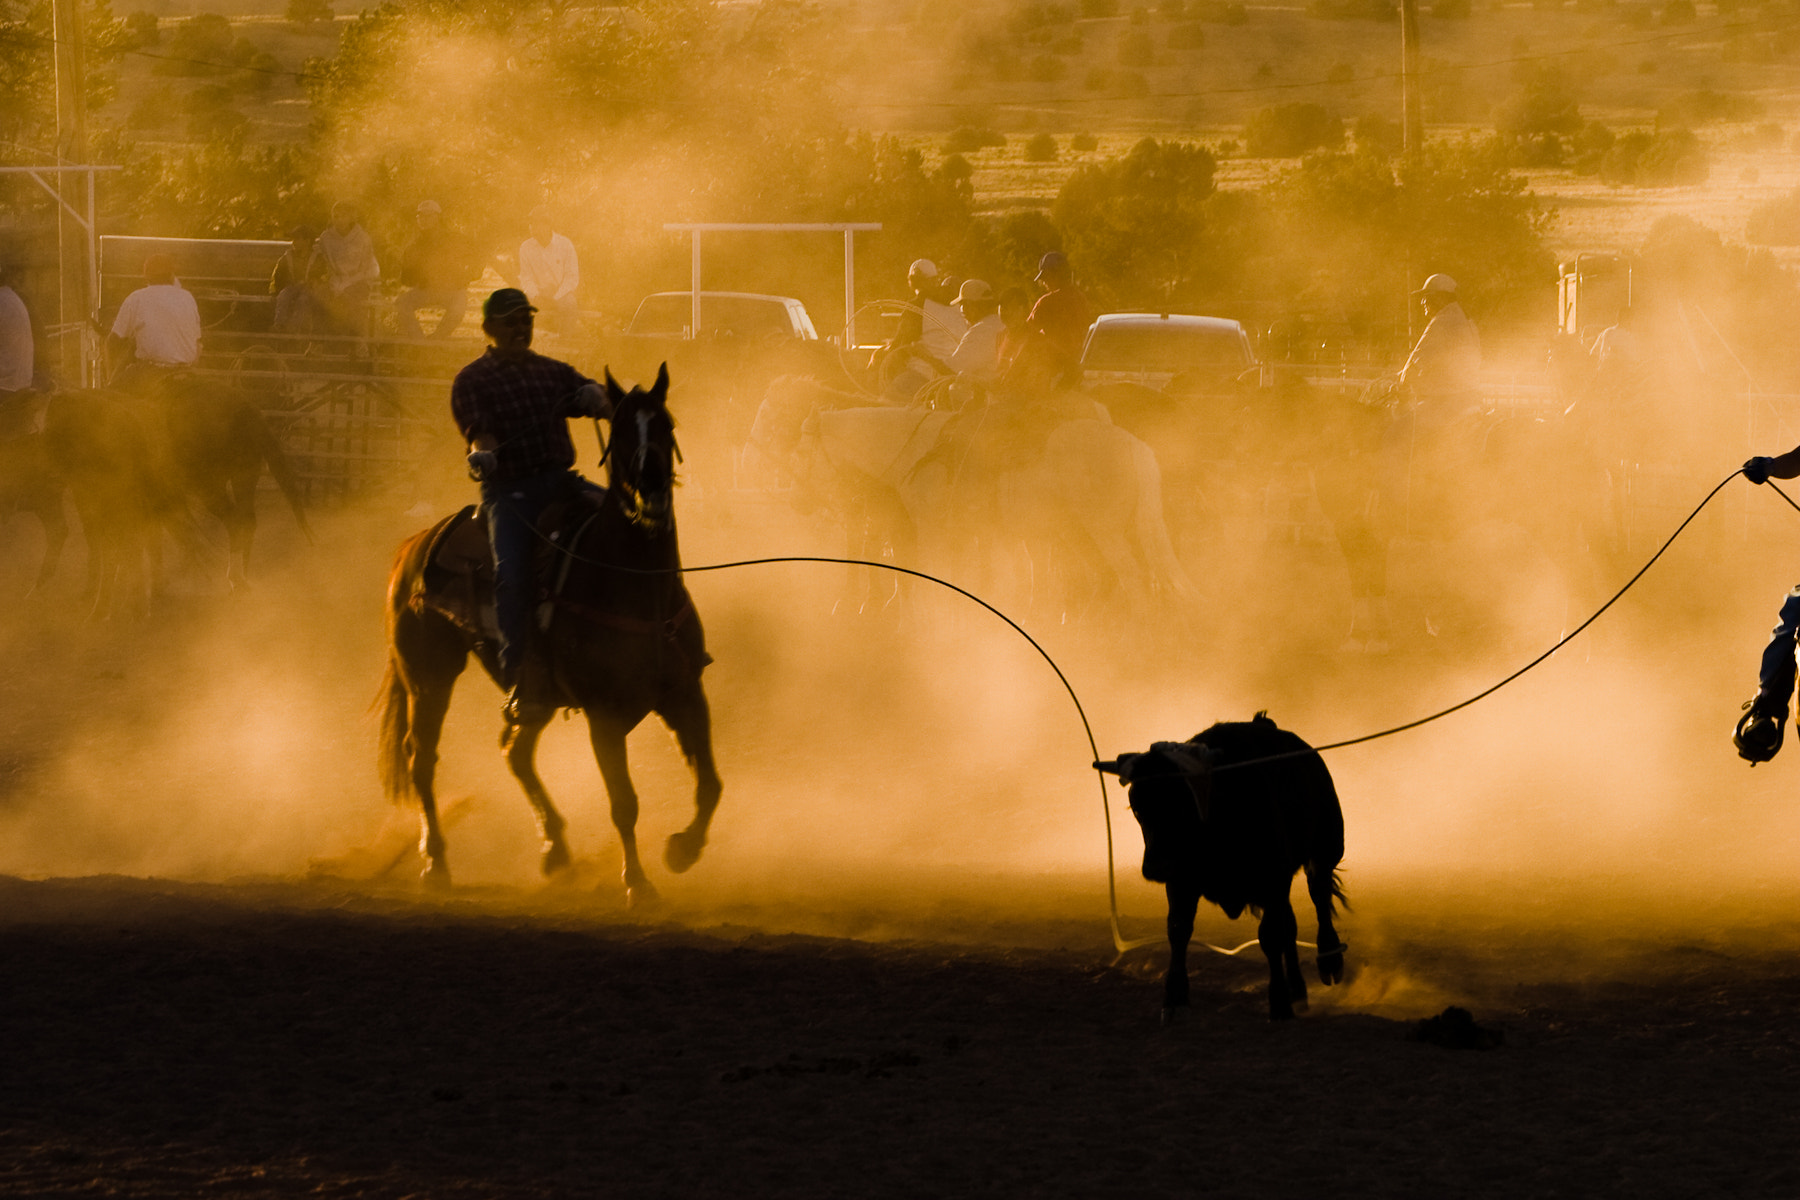 Photograph Rodeo at dust by Gianluca Colla on 500px